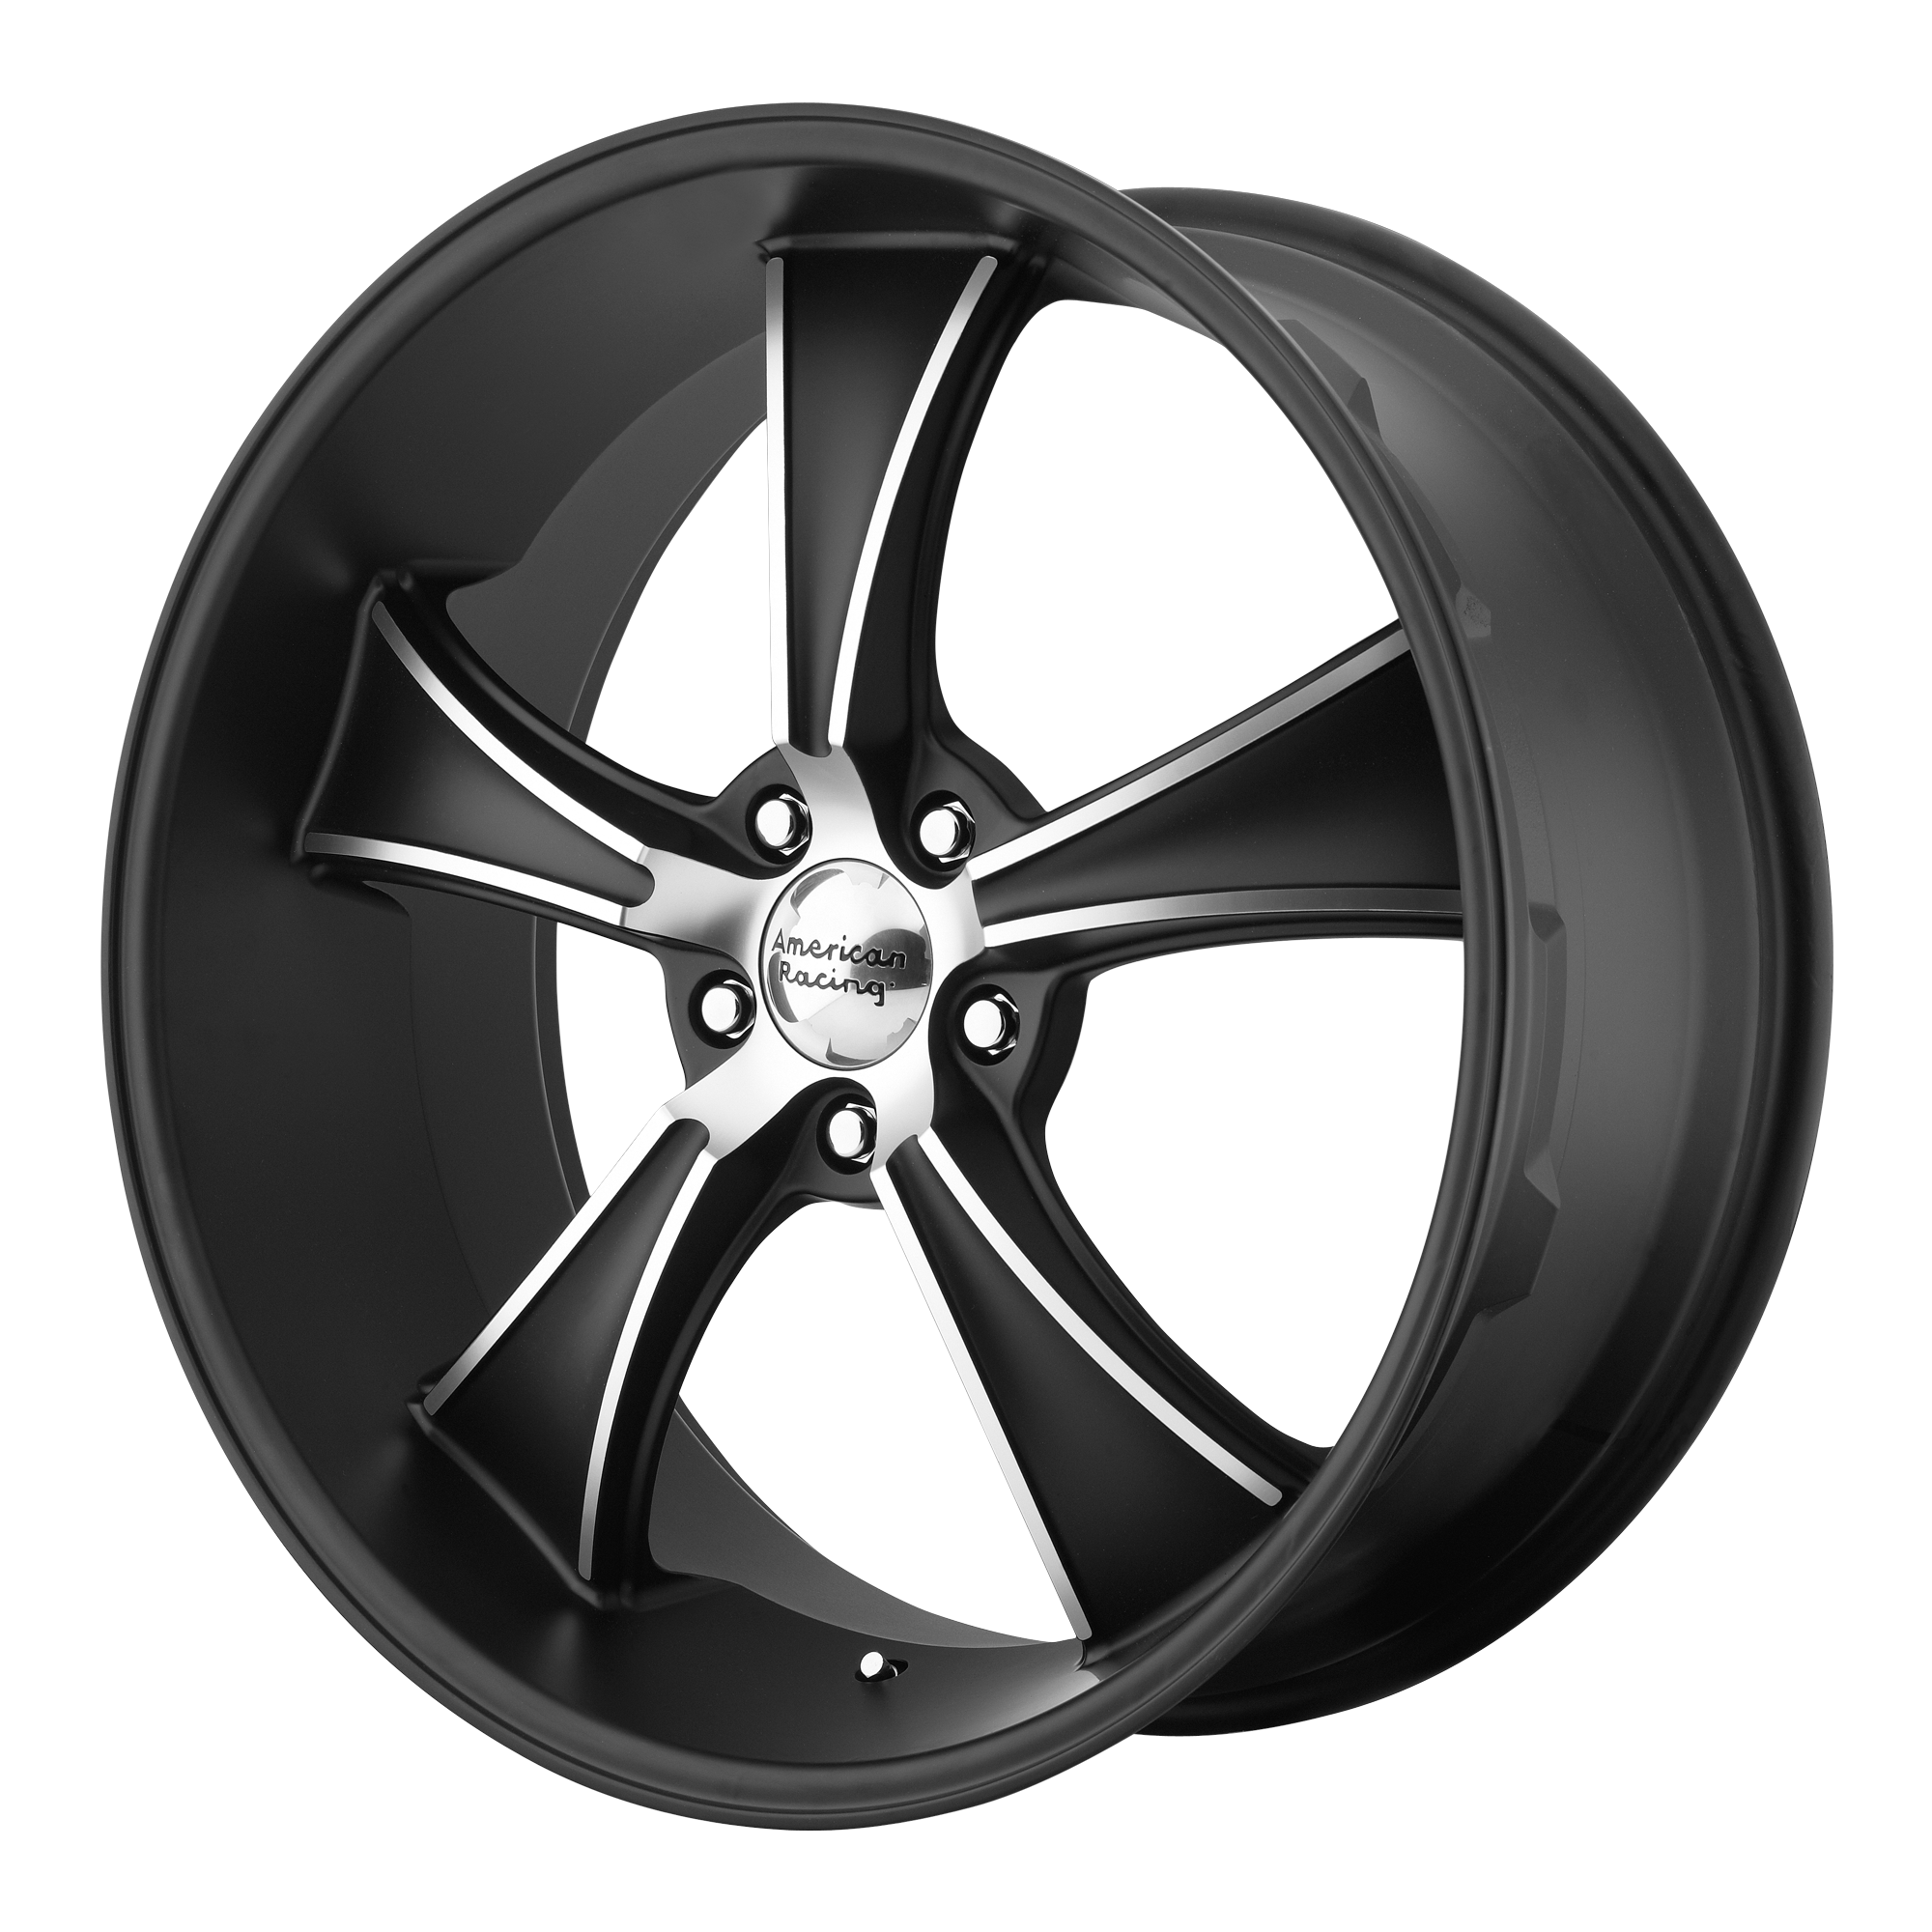 American Racing Wheels VN805 BLVD Machined